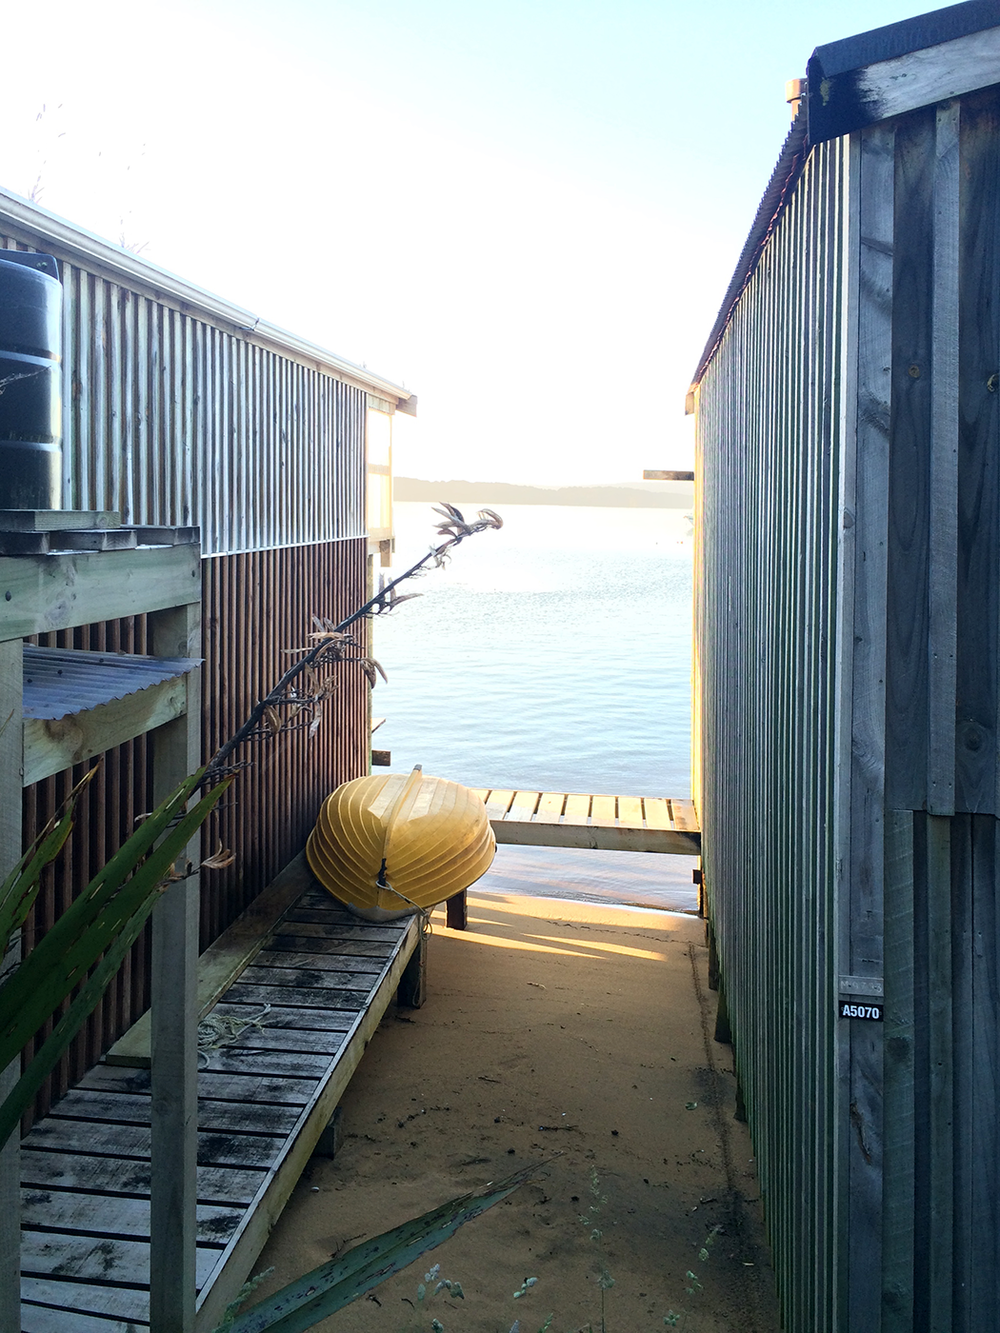 Boathouses - Stewart Island, New Zealand